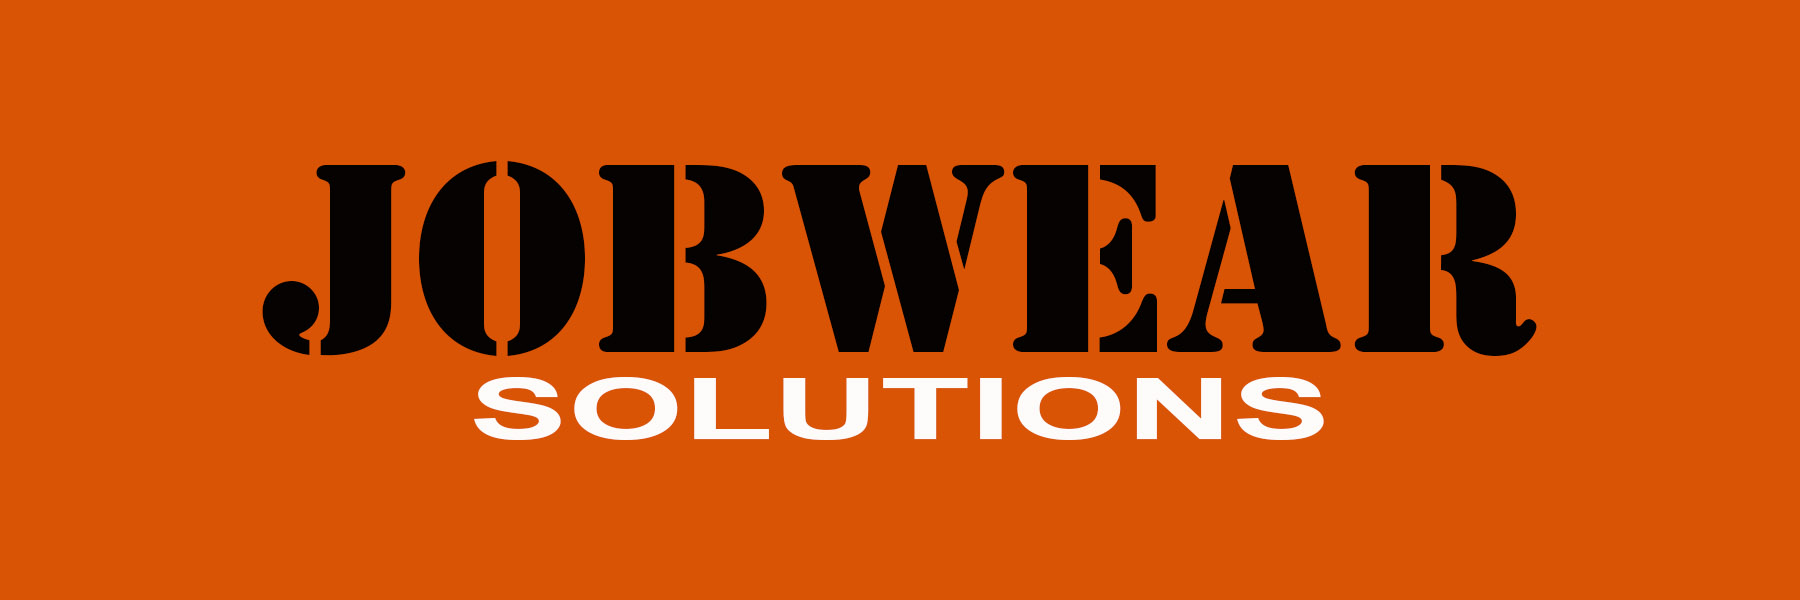 Jobwearsolutions logo